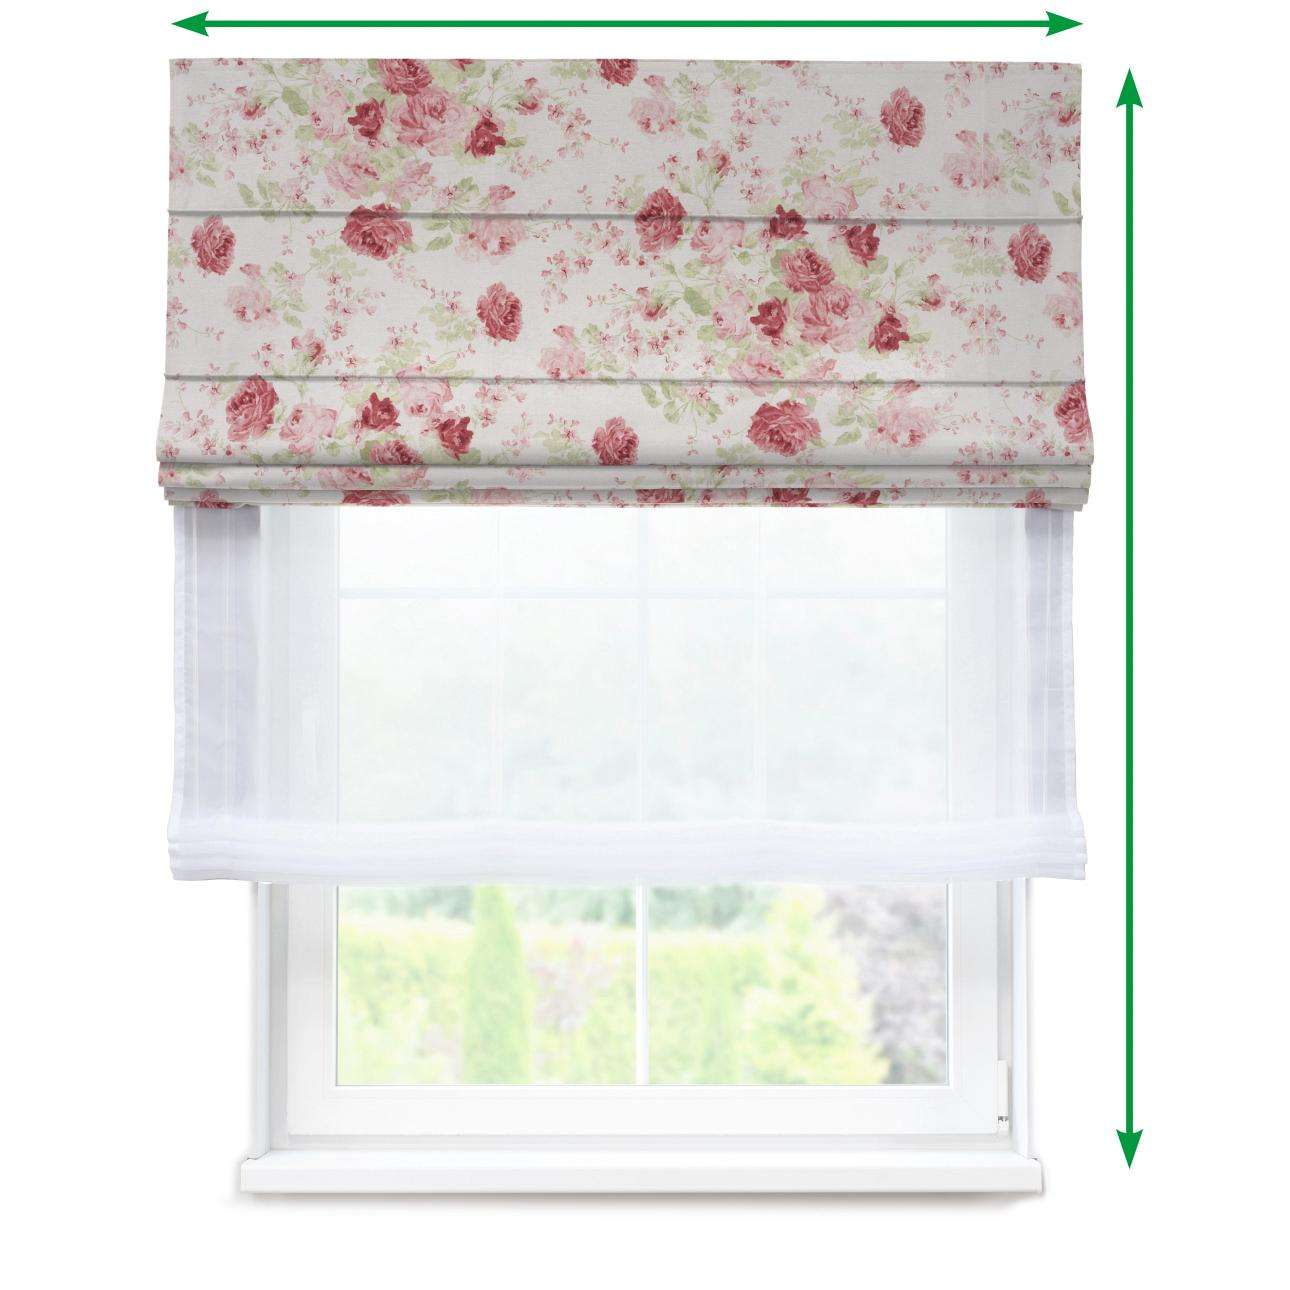 Voile and fabric roman blind (DUO II) in collection Flowers, fabric: 140-90